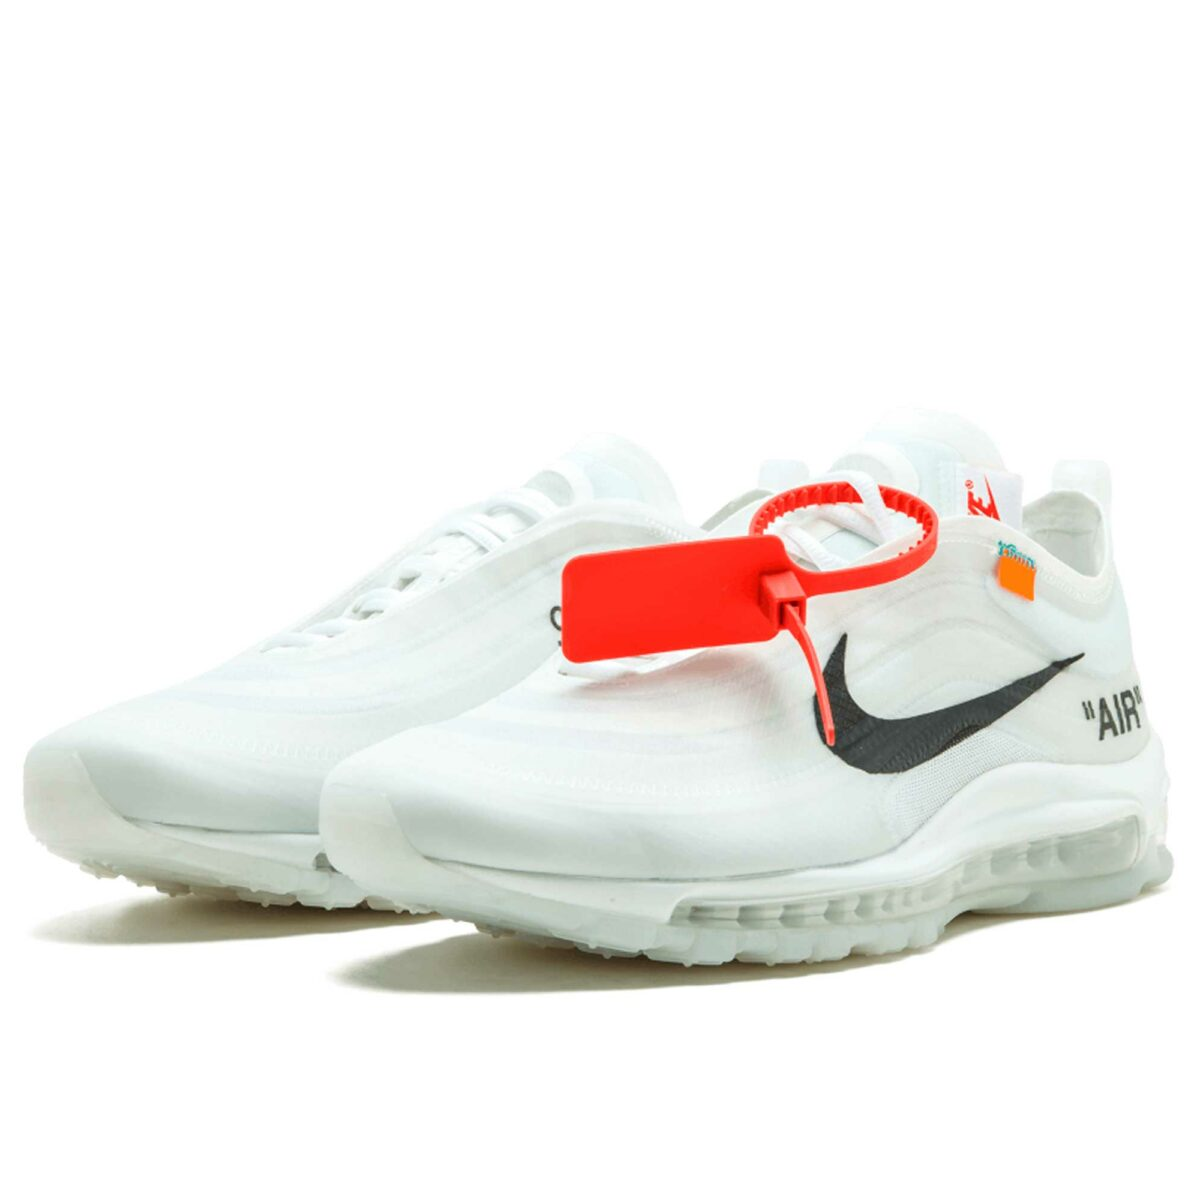 оригинальные off white colection «The Ten» x nike air max 97 og AJ4585_100 купить